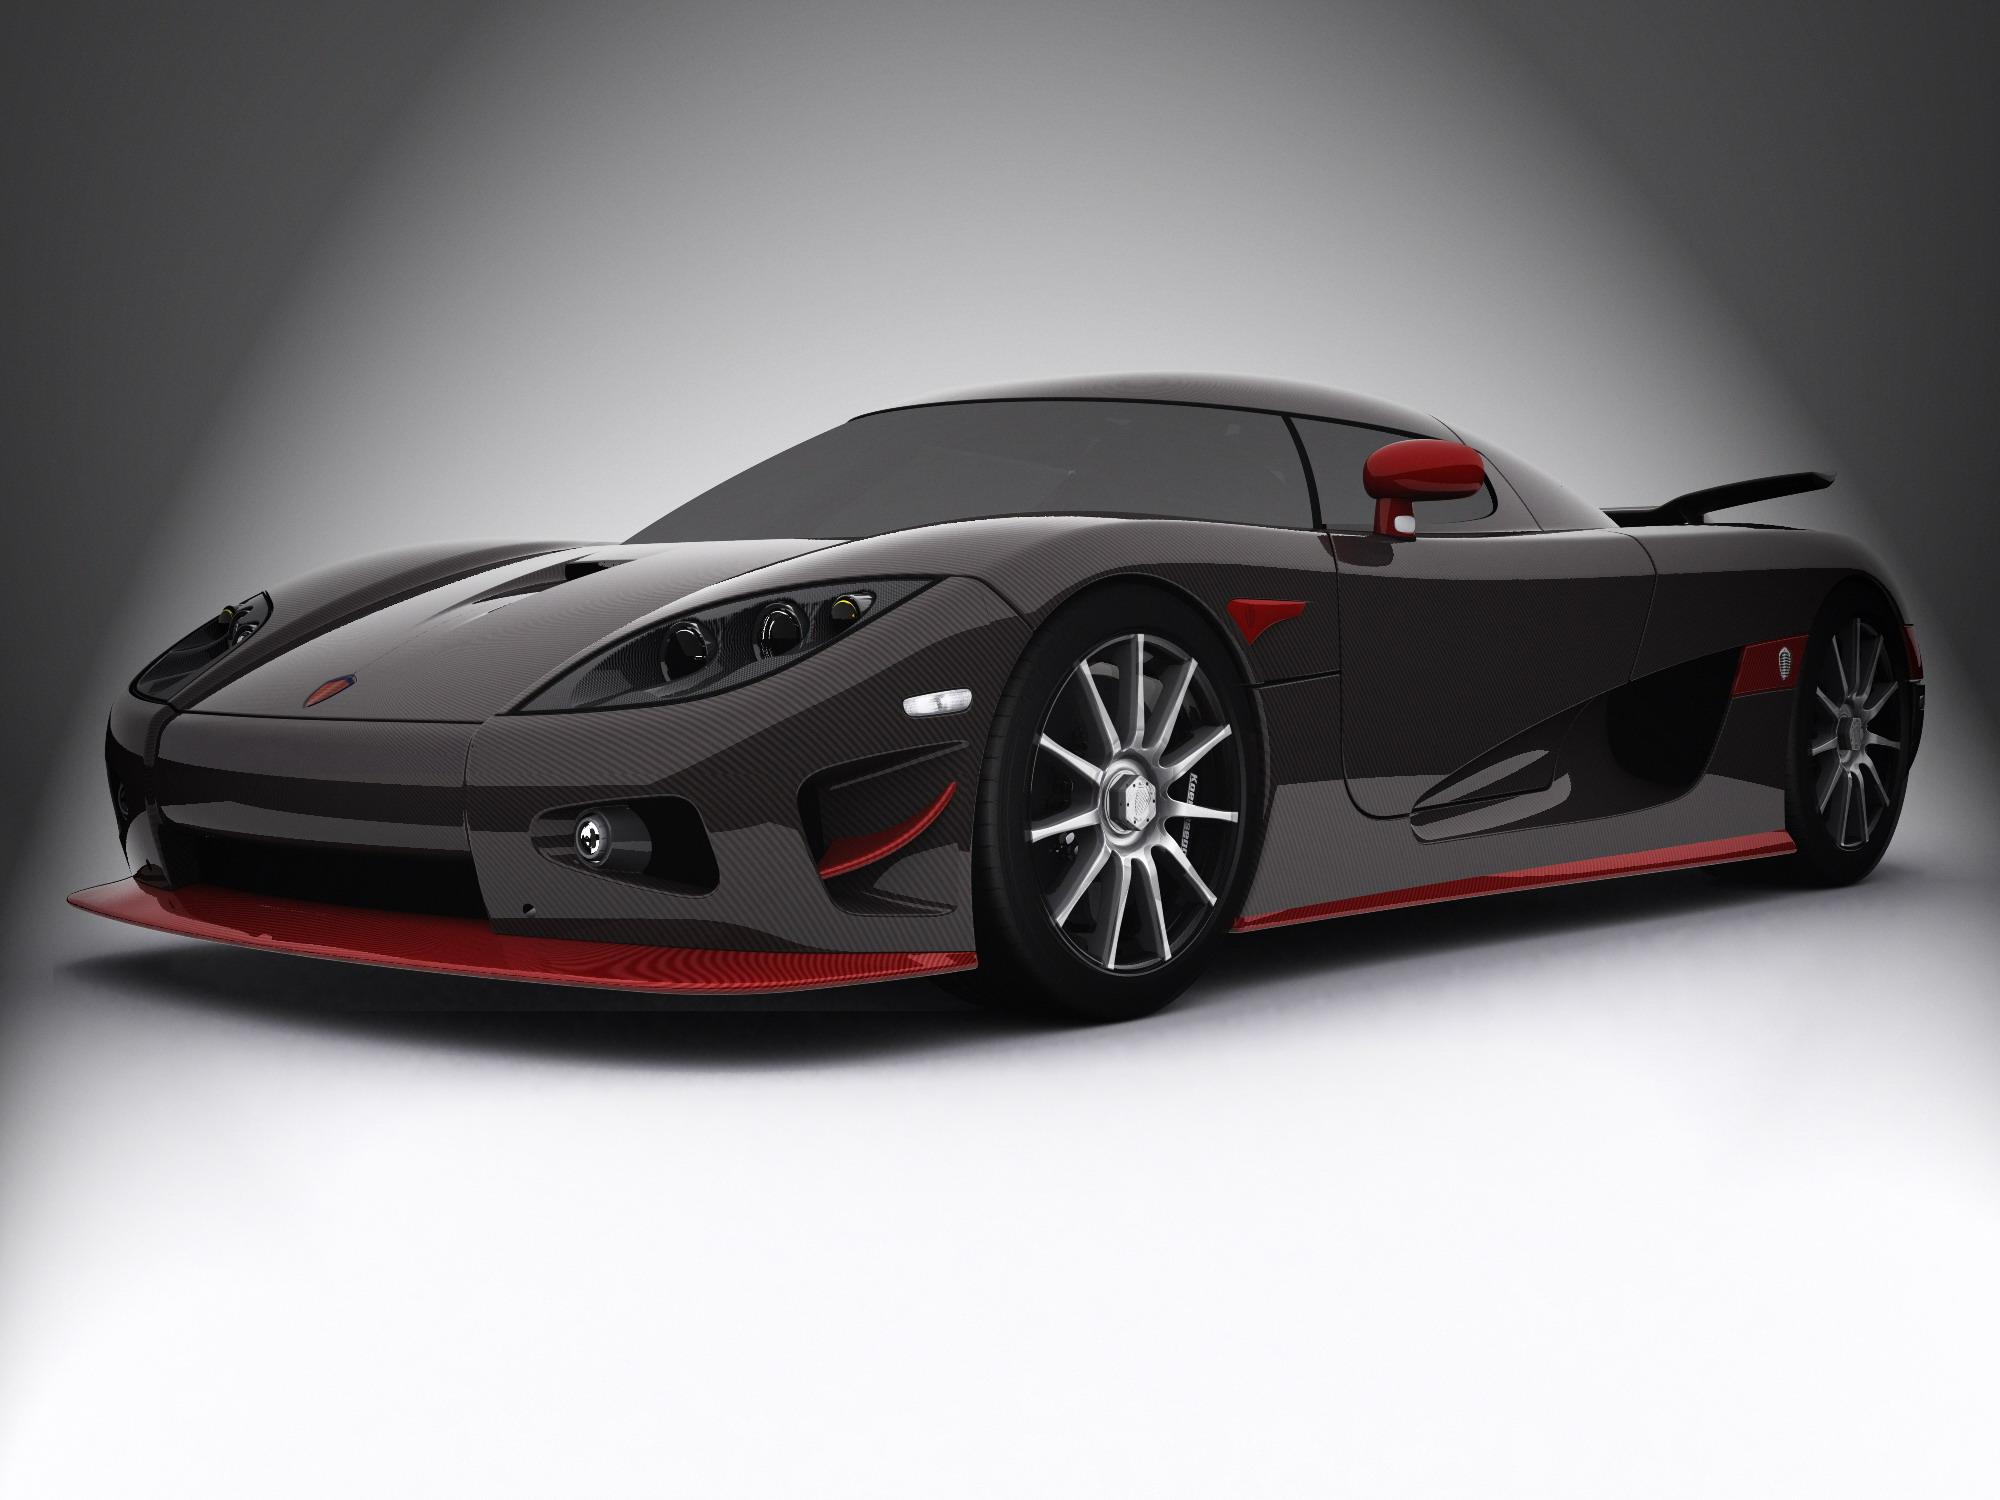 2007 Koenigsegg CCX And CCXR Limited Editions | Top Speed